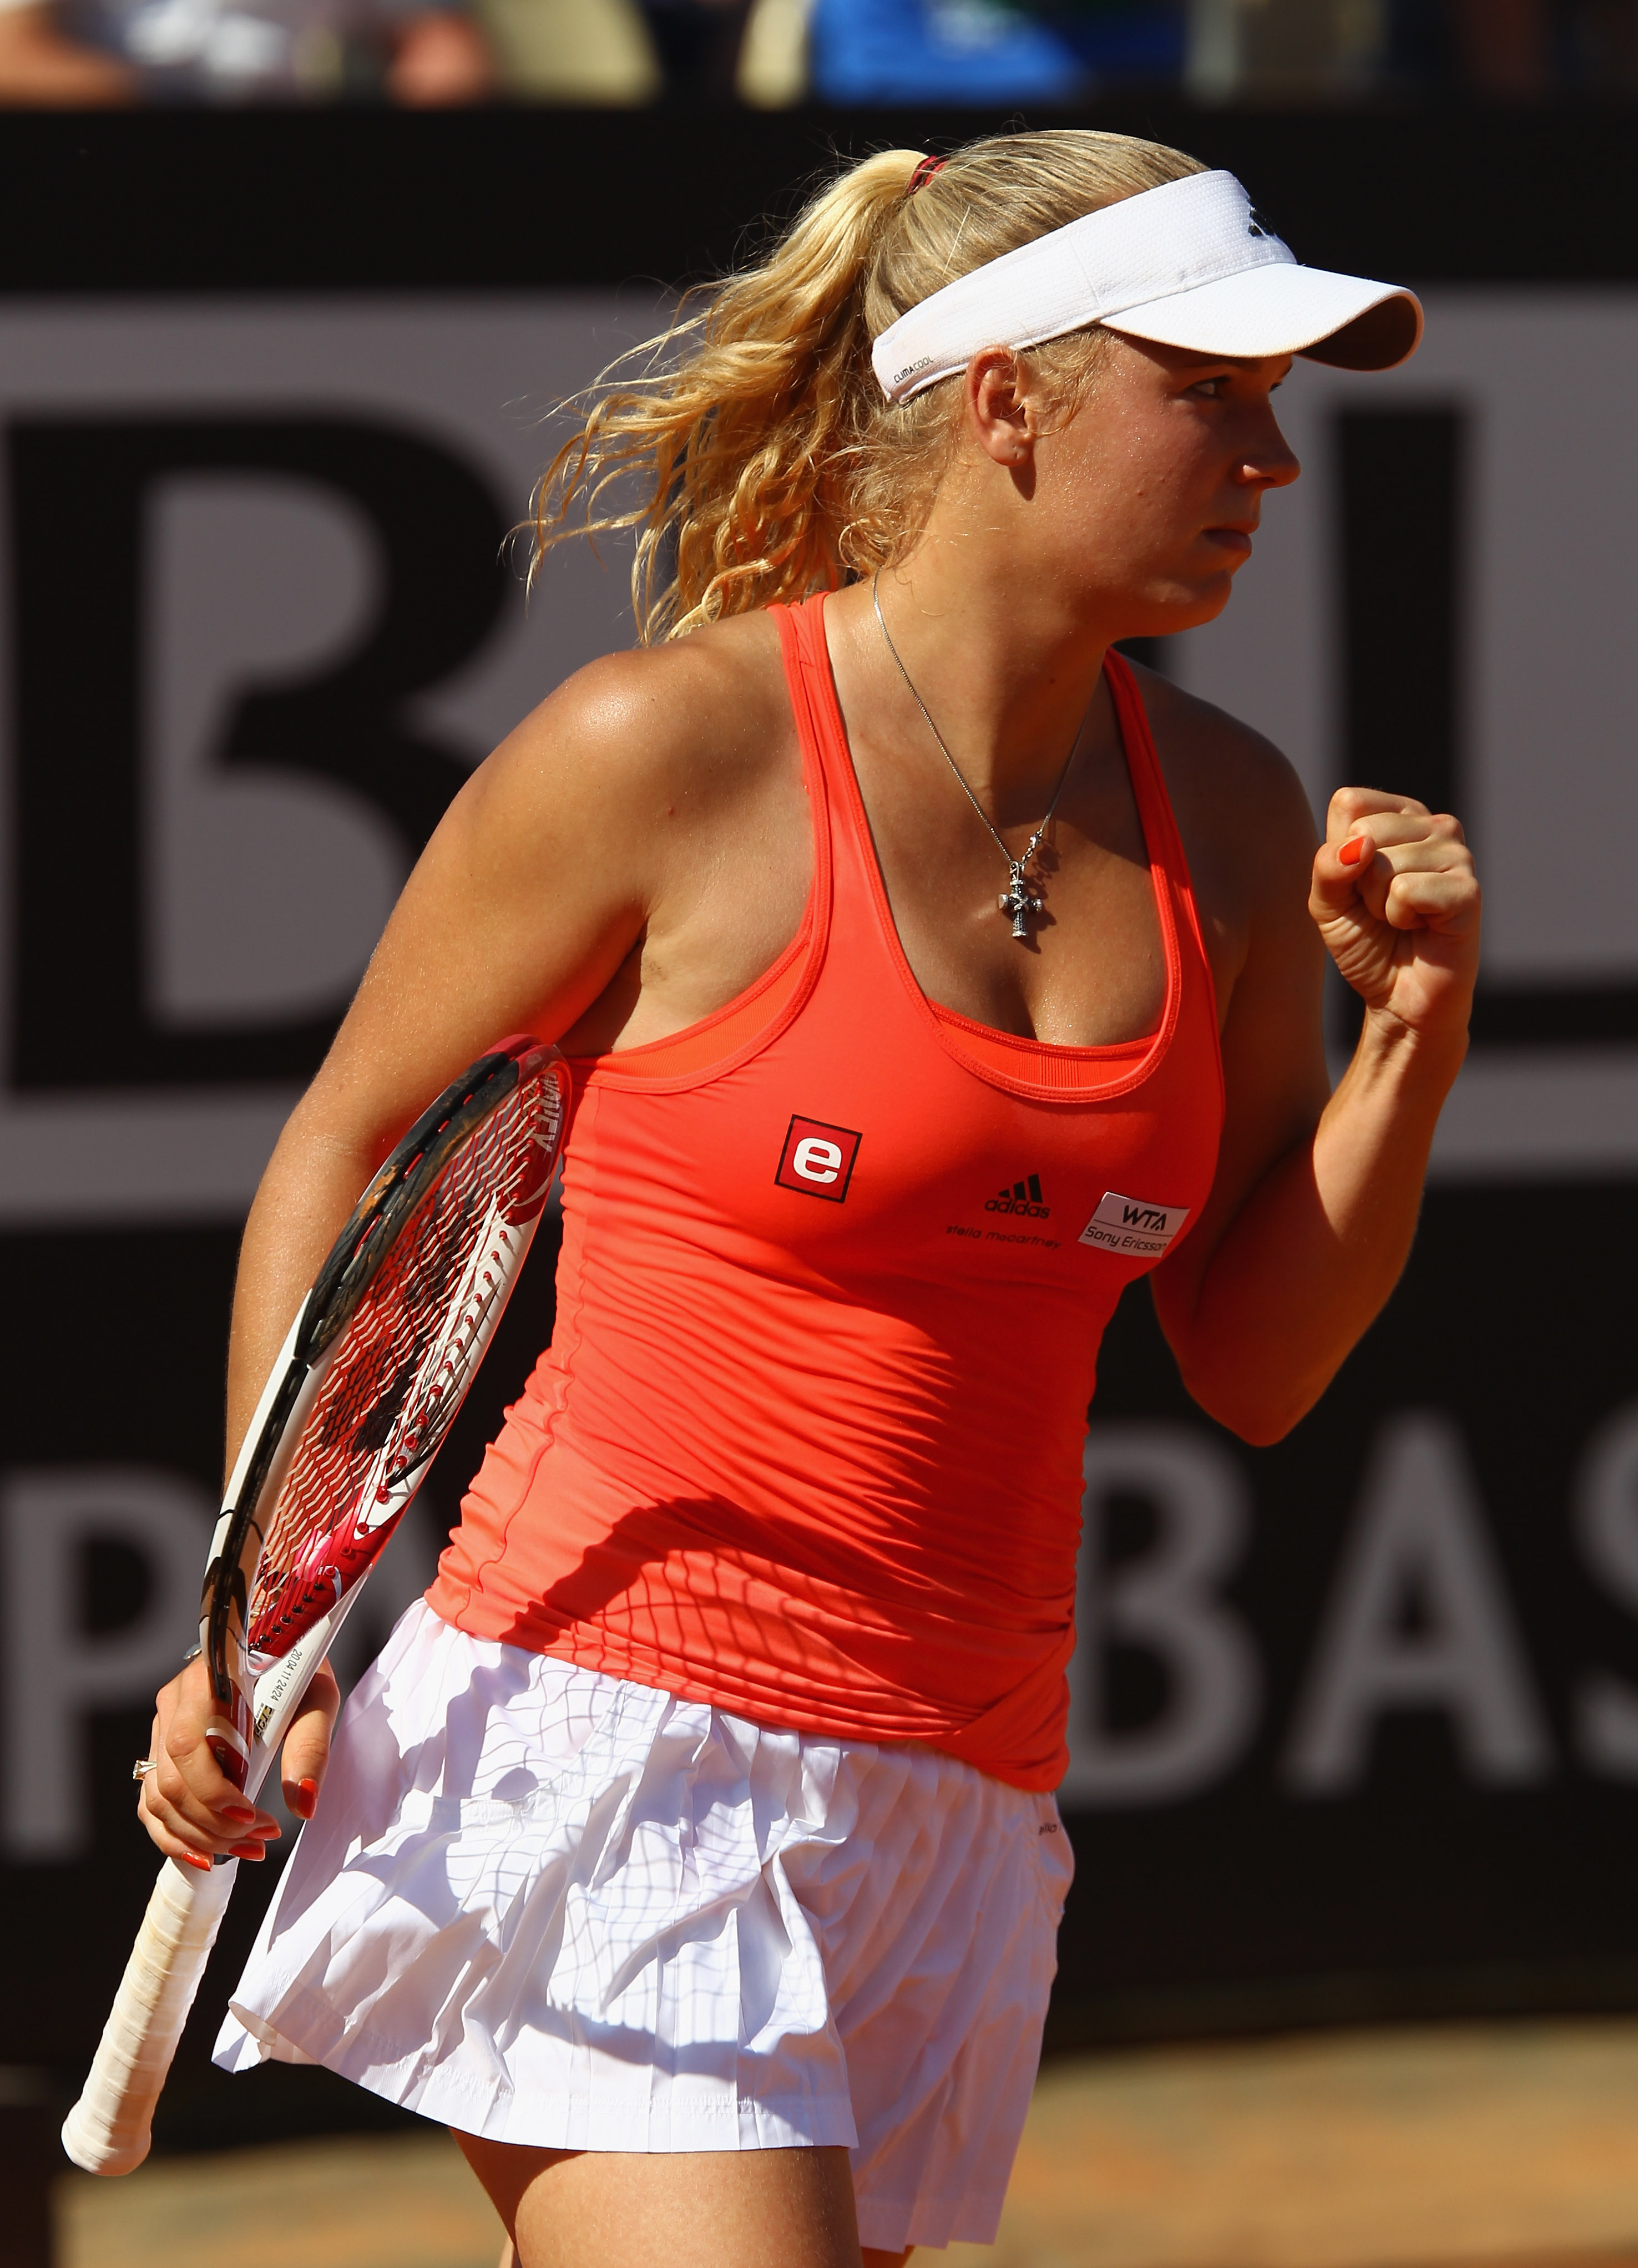 ROME, ITALY - MAY 13:  Caroline Wozniacki of Denmark celebrates a point during her quarter final match against Jelena Jankovic of Serbia during day six of the Internazoinali BNL D'Italia at the Foro Italico Tennis Centre  on May 13, 2011 in Rome, Italy.